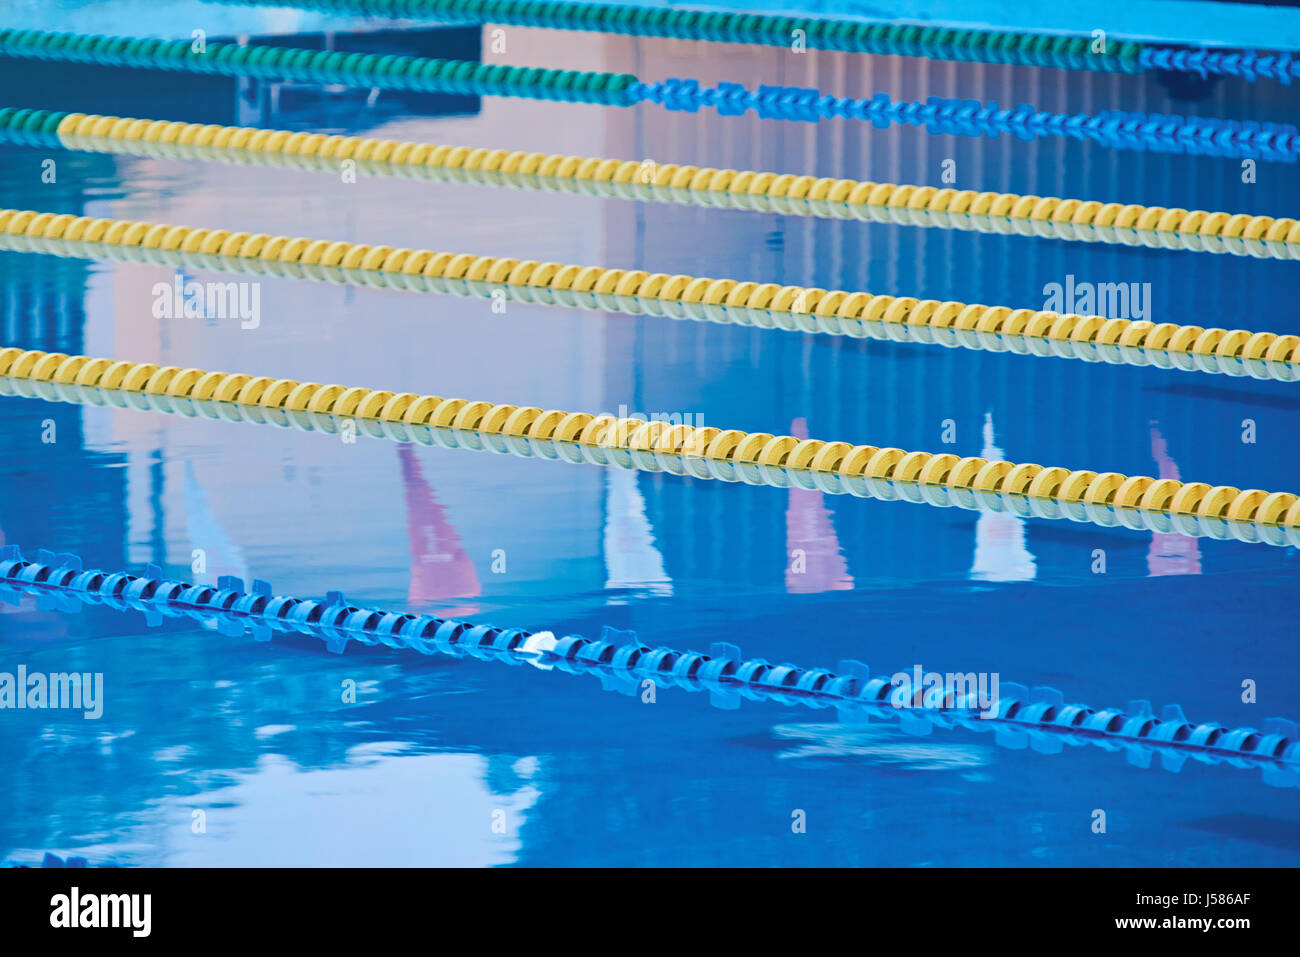 Olympic Swimming Pool Lanes empty olympic swimming pool clear stock photos & empty olympic